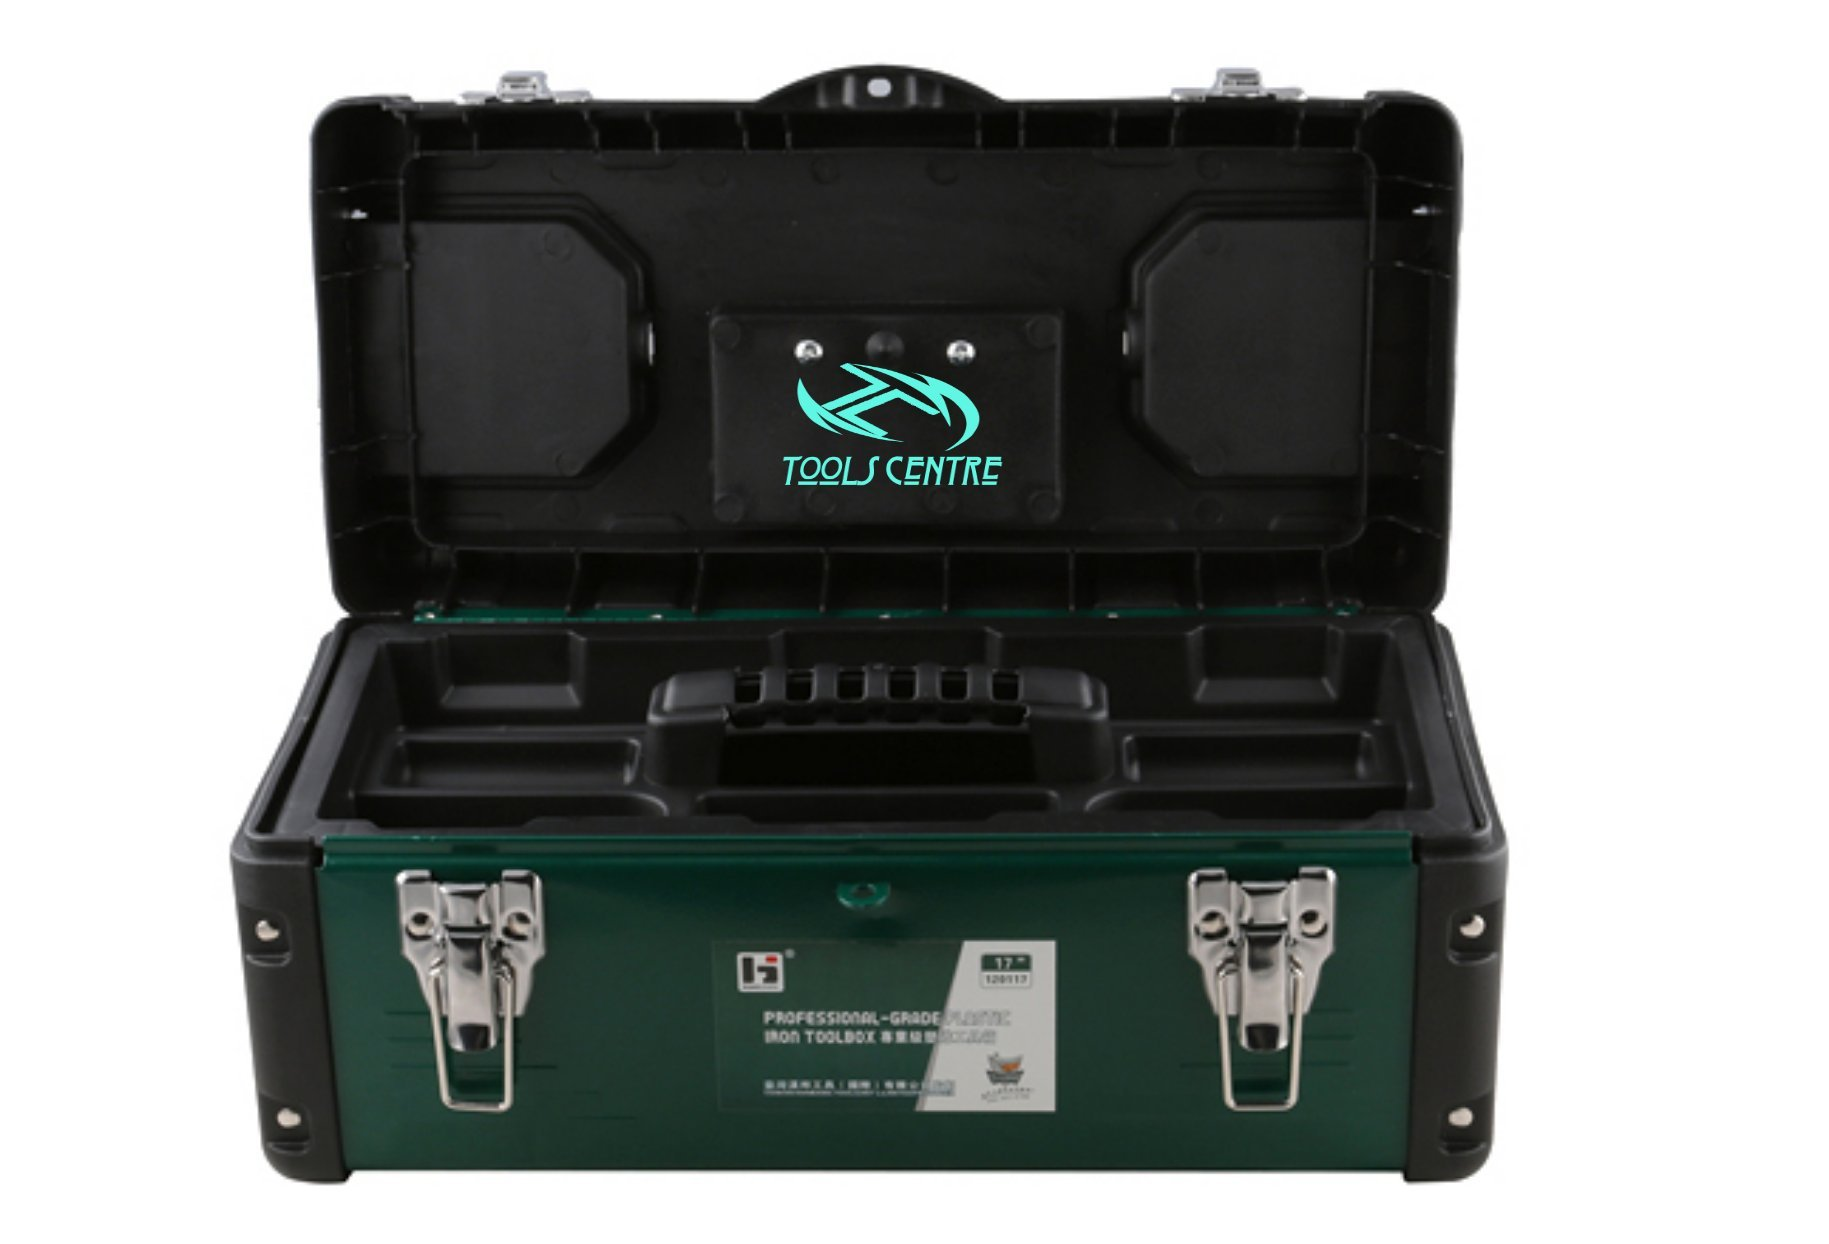 Tools Centre New Arrival Exclusive Quality Metal ABS Tool Box With Safety Latch. (17'')